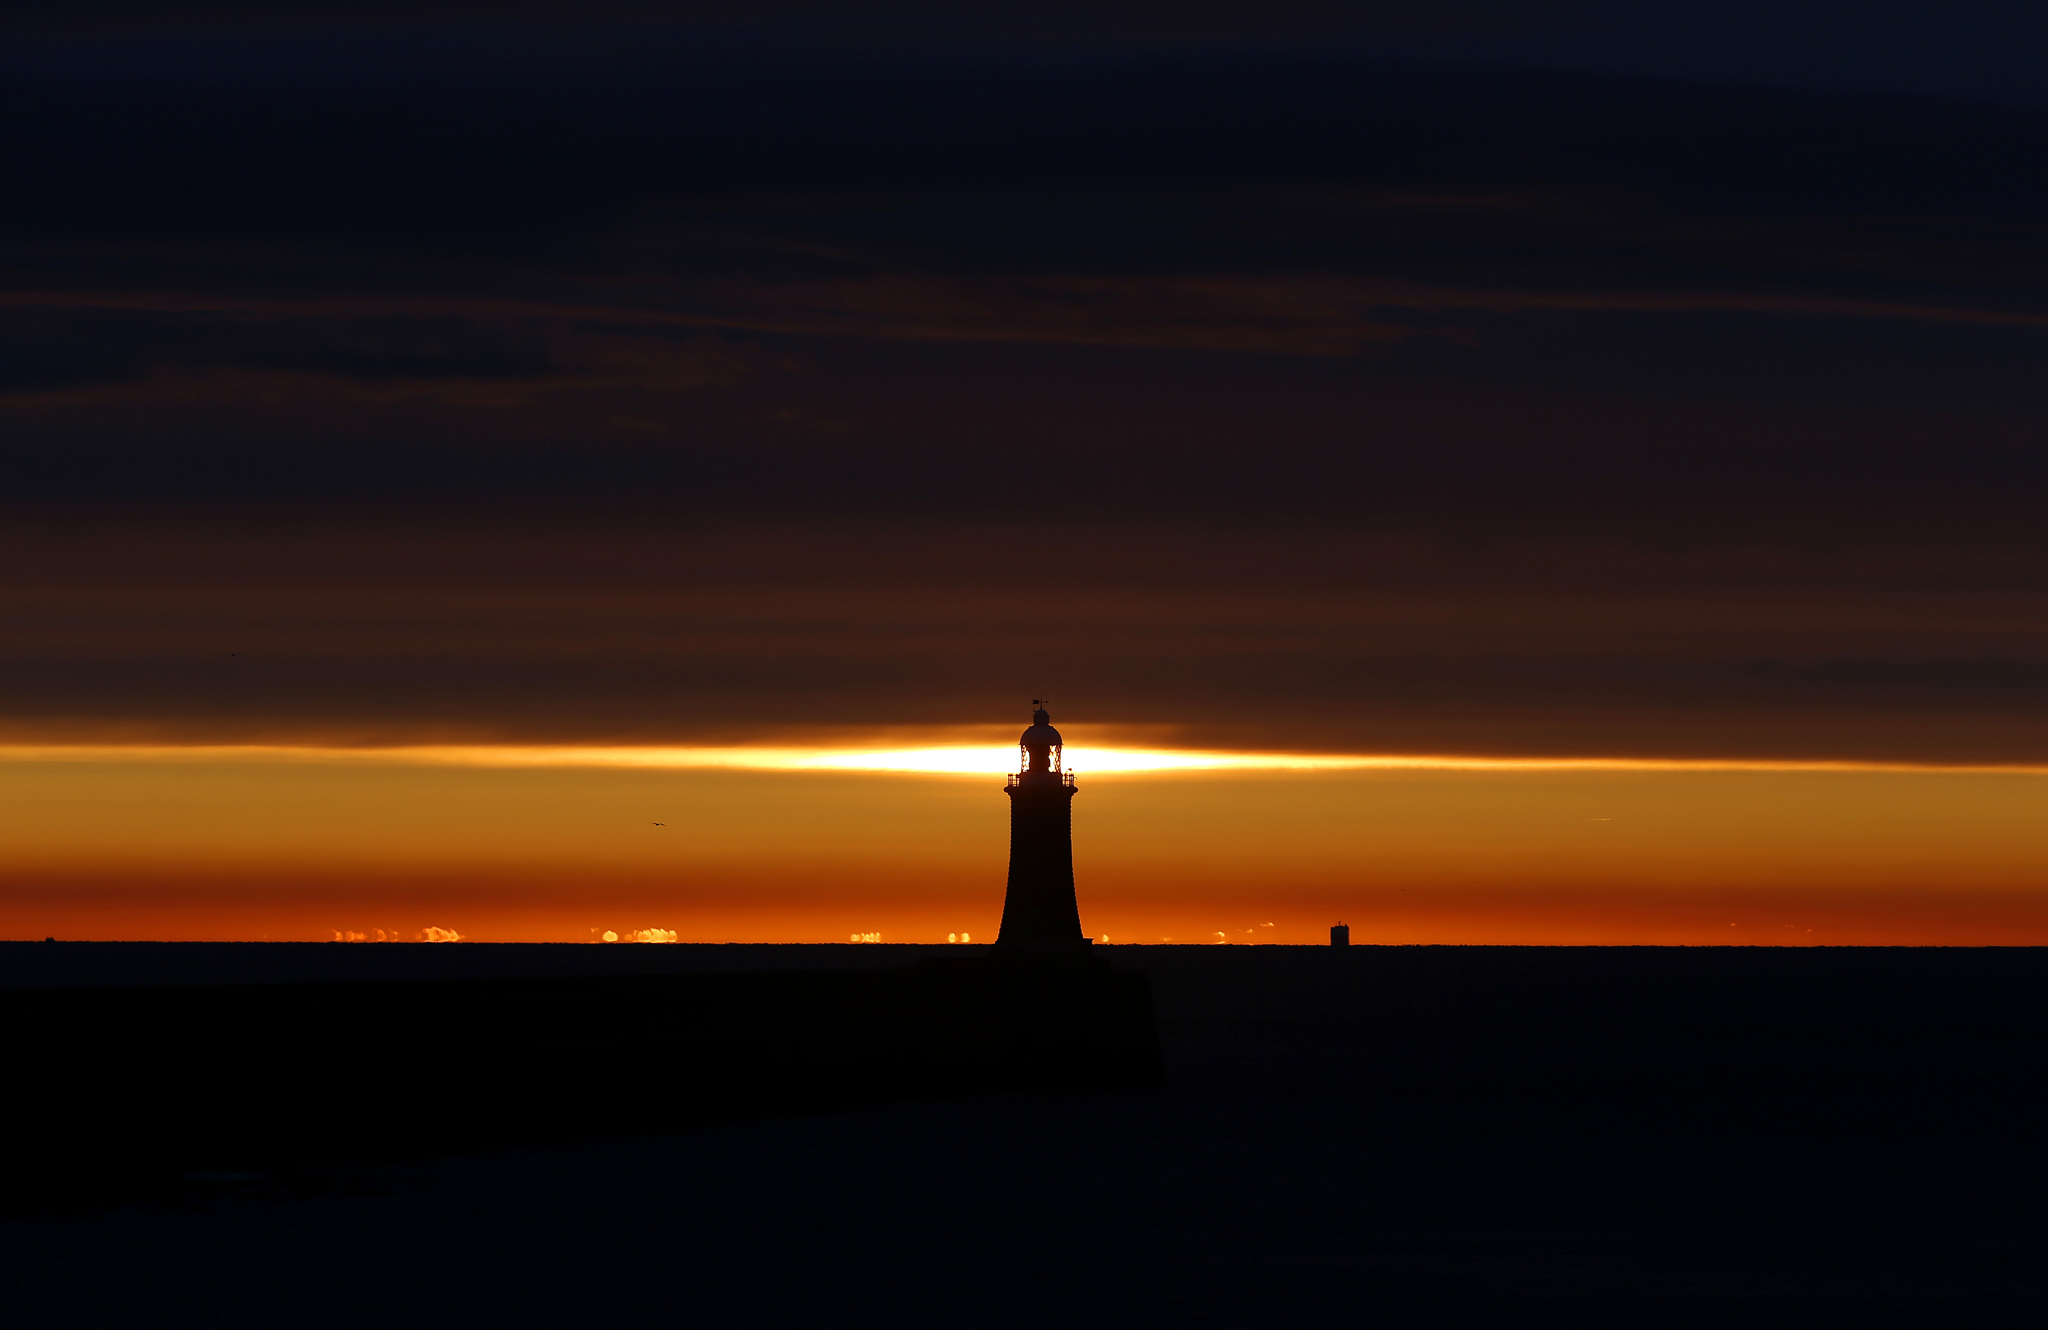 Spring weather Mar 8th 2016...The sun rises over the North Sea as a ship heads into the mouth of the river Tyne in Tynemouth, as signs of spring will start to show at the end of this week with climbing temperatures across the UK. PRESS ASSOCIATION Photo. Picture date: Tuesday March 8, 2016. The Met Office said there will be more sun and increasingly mild conditions nationwide, with levels rising from Thursday as a tropical maritime air travels up. See PA story WEATHER Spring. Photo credit should read: Owen Humphreys/PA Wire